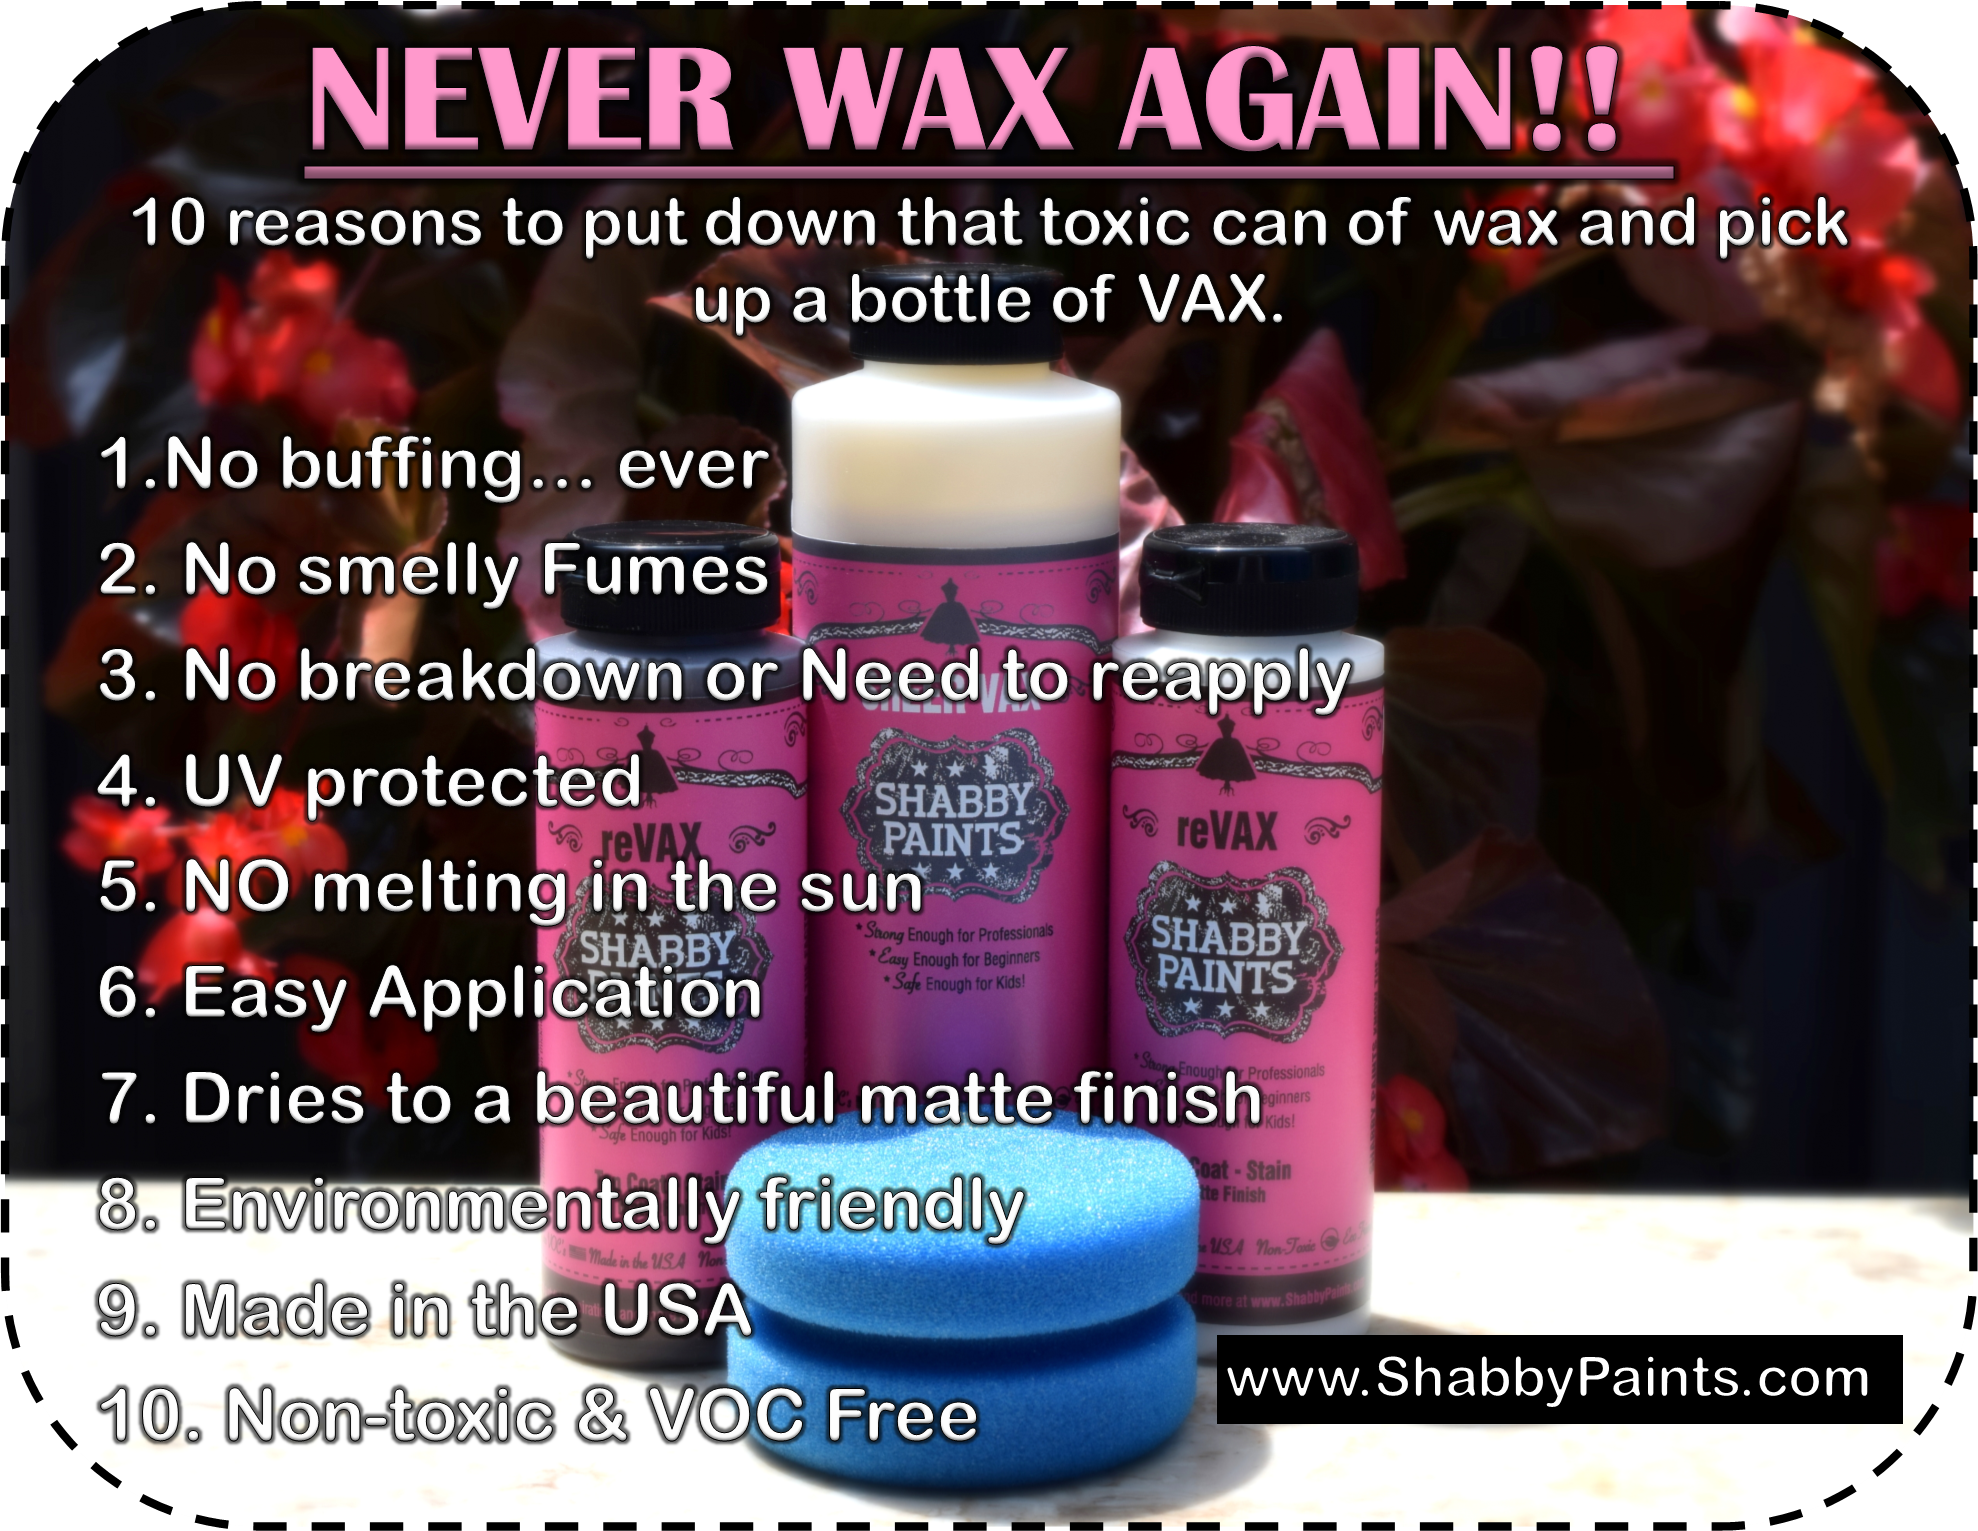 10 reasons to stop waxing and go non toxic!